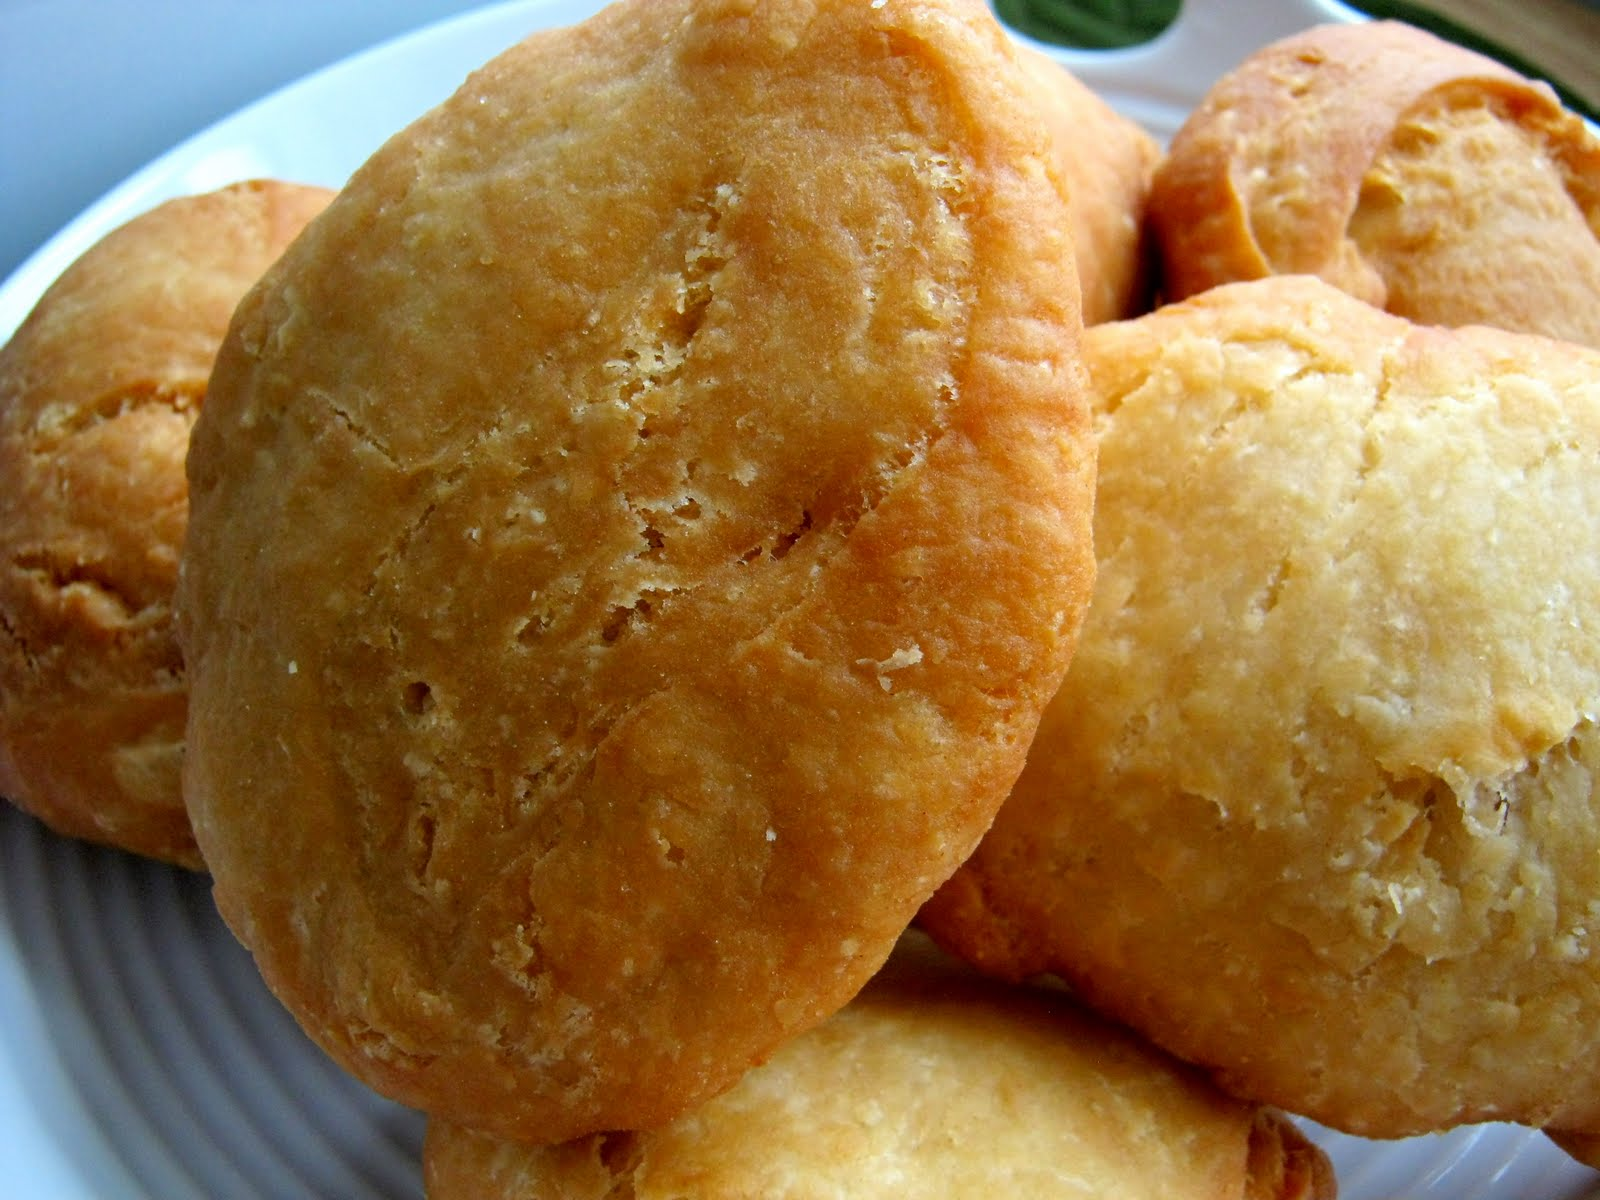 The Inner Gourmet: Bake and Saltfish: A classic Caribbean breakfast!